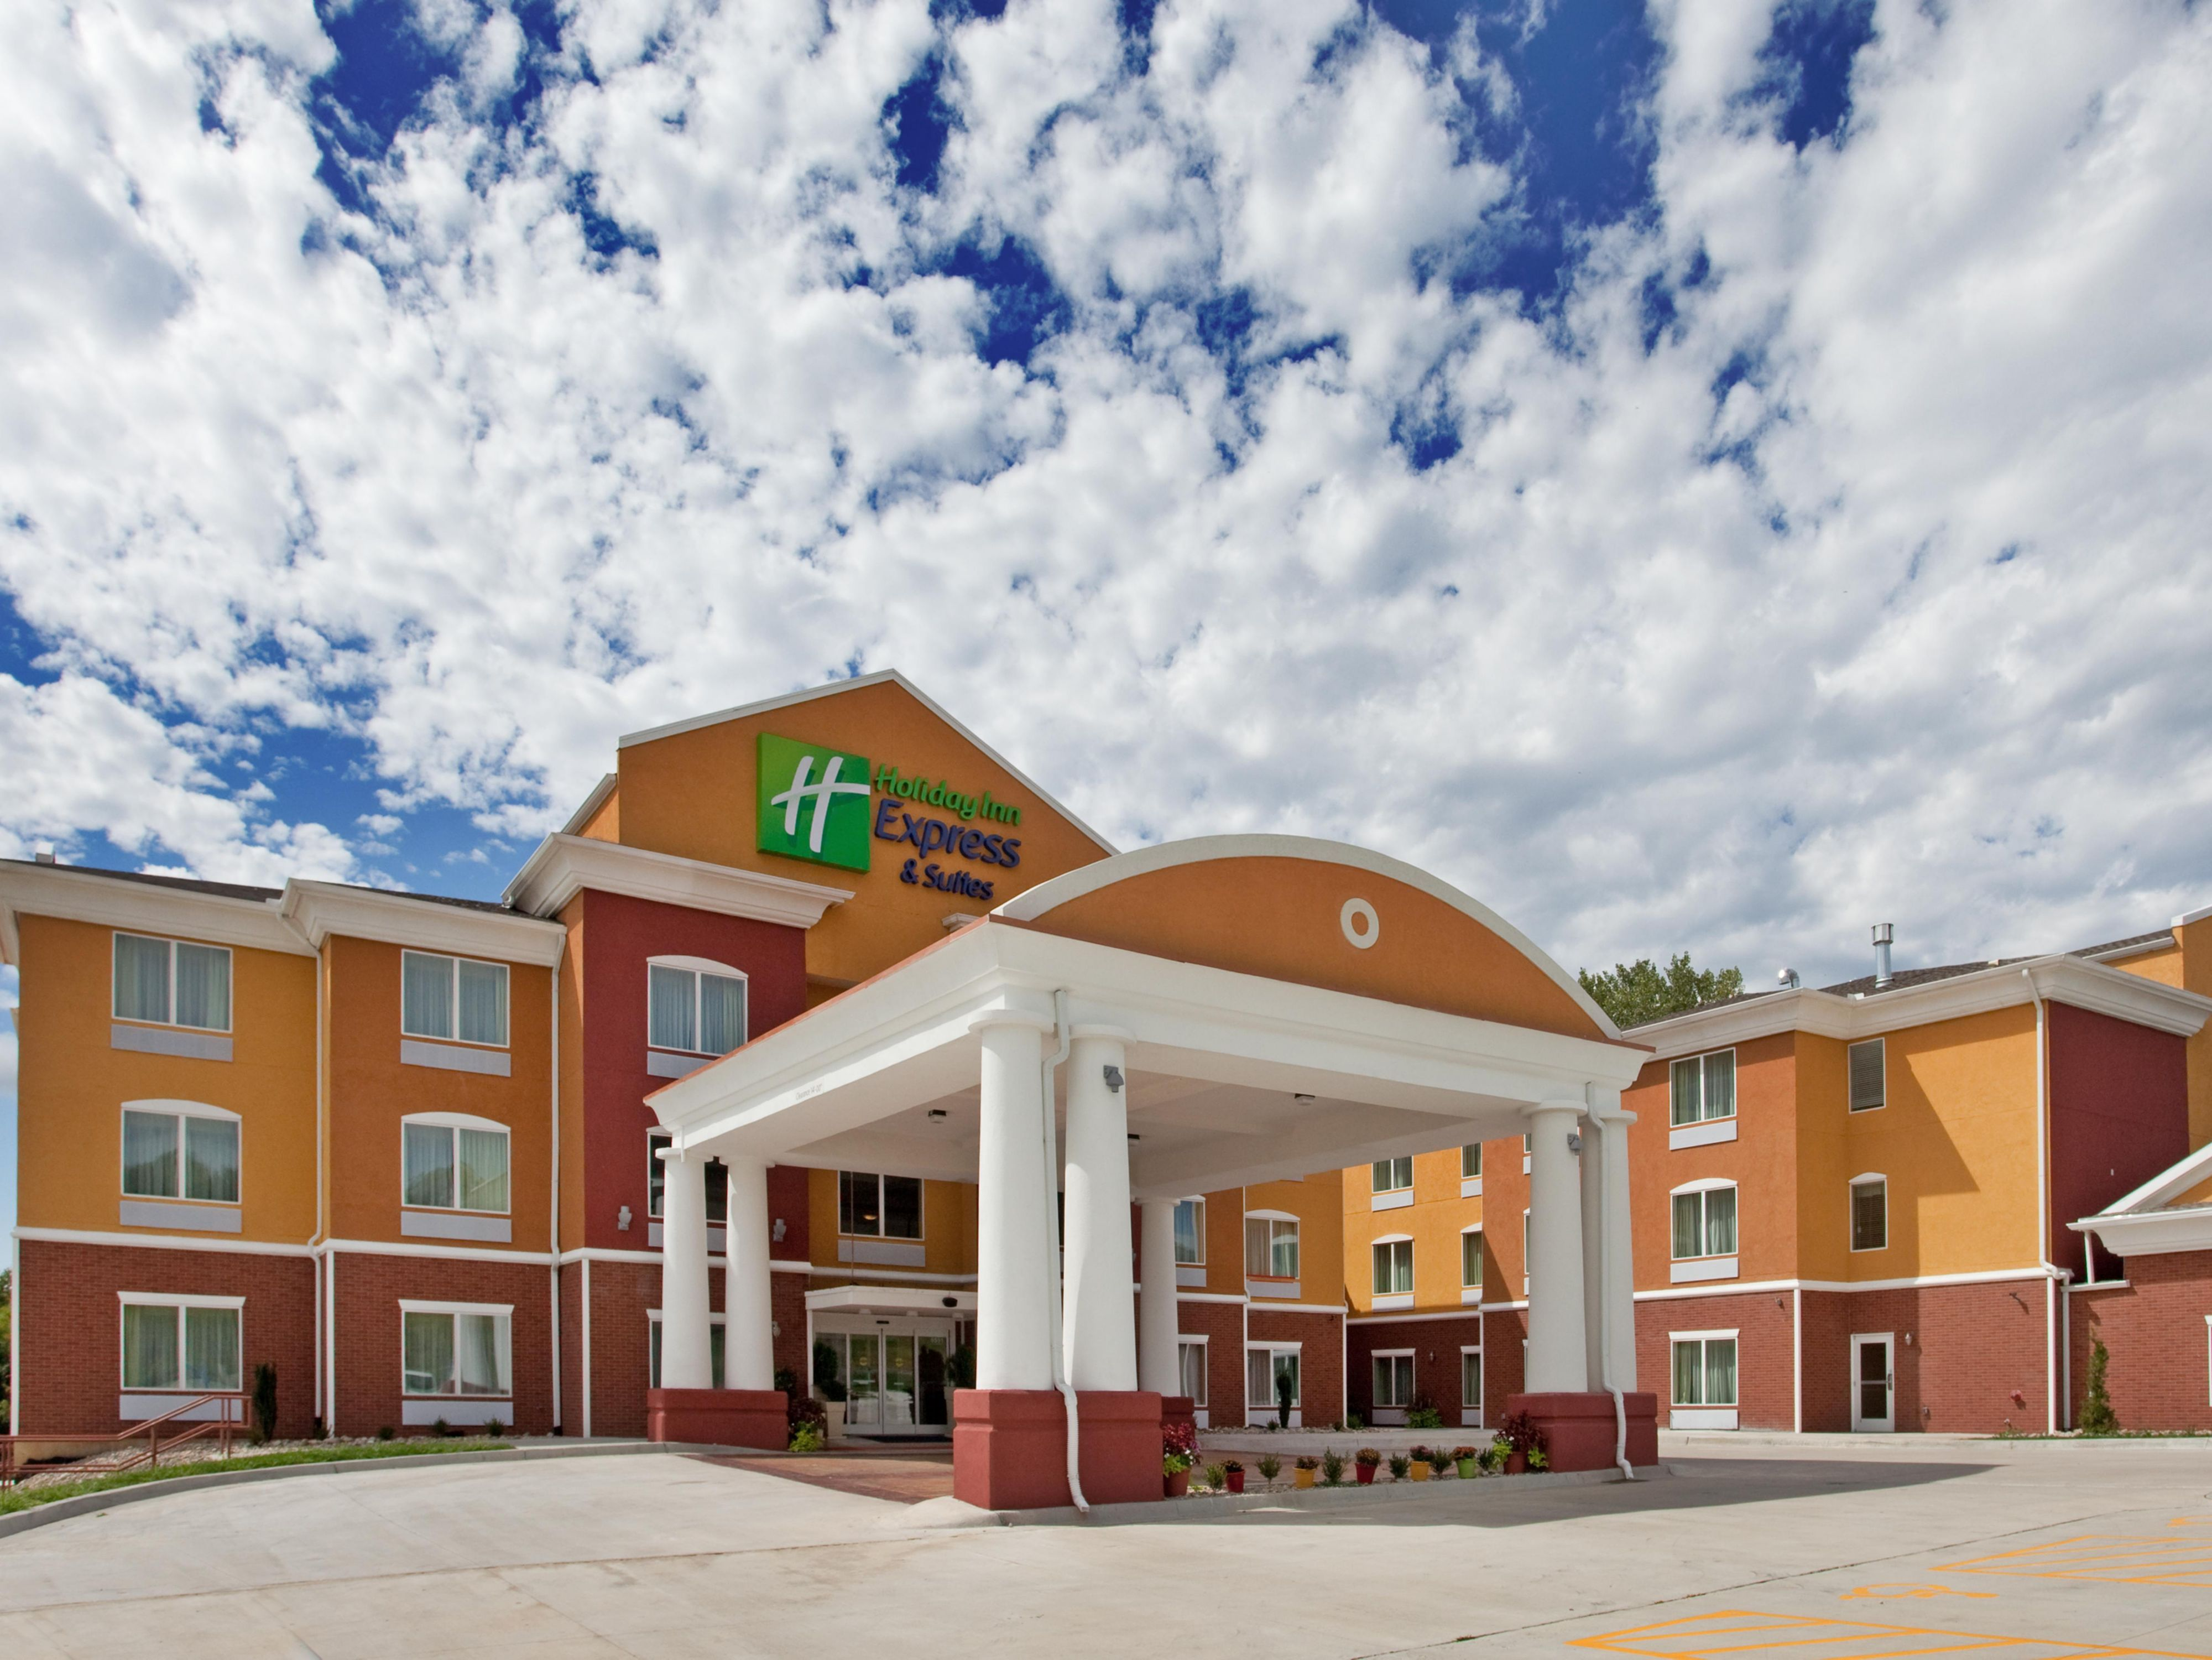 Candlewood Suites Kansas City Hotels With Kitchens